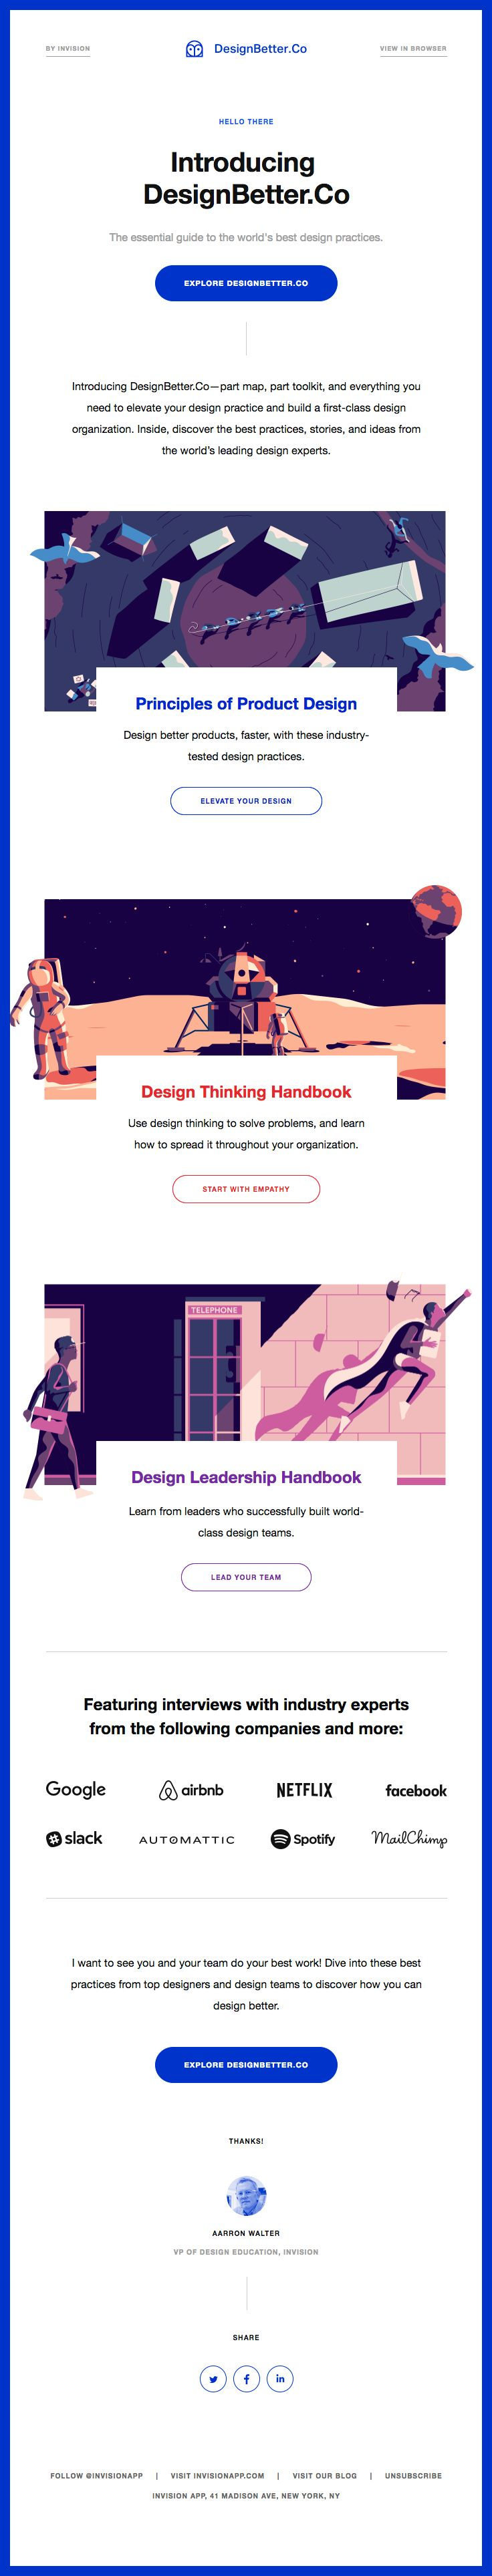 @invisionapp sent this email with the subject line: Introducing DesignBetter.Co—The essential guide to the world's best design practices - Read about this email and find more featured product emails at ReallyGoodEmails.com #announcement #app #featuredproduct